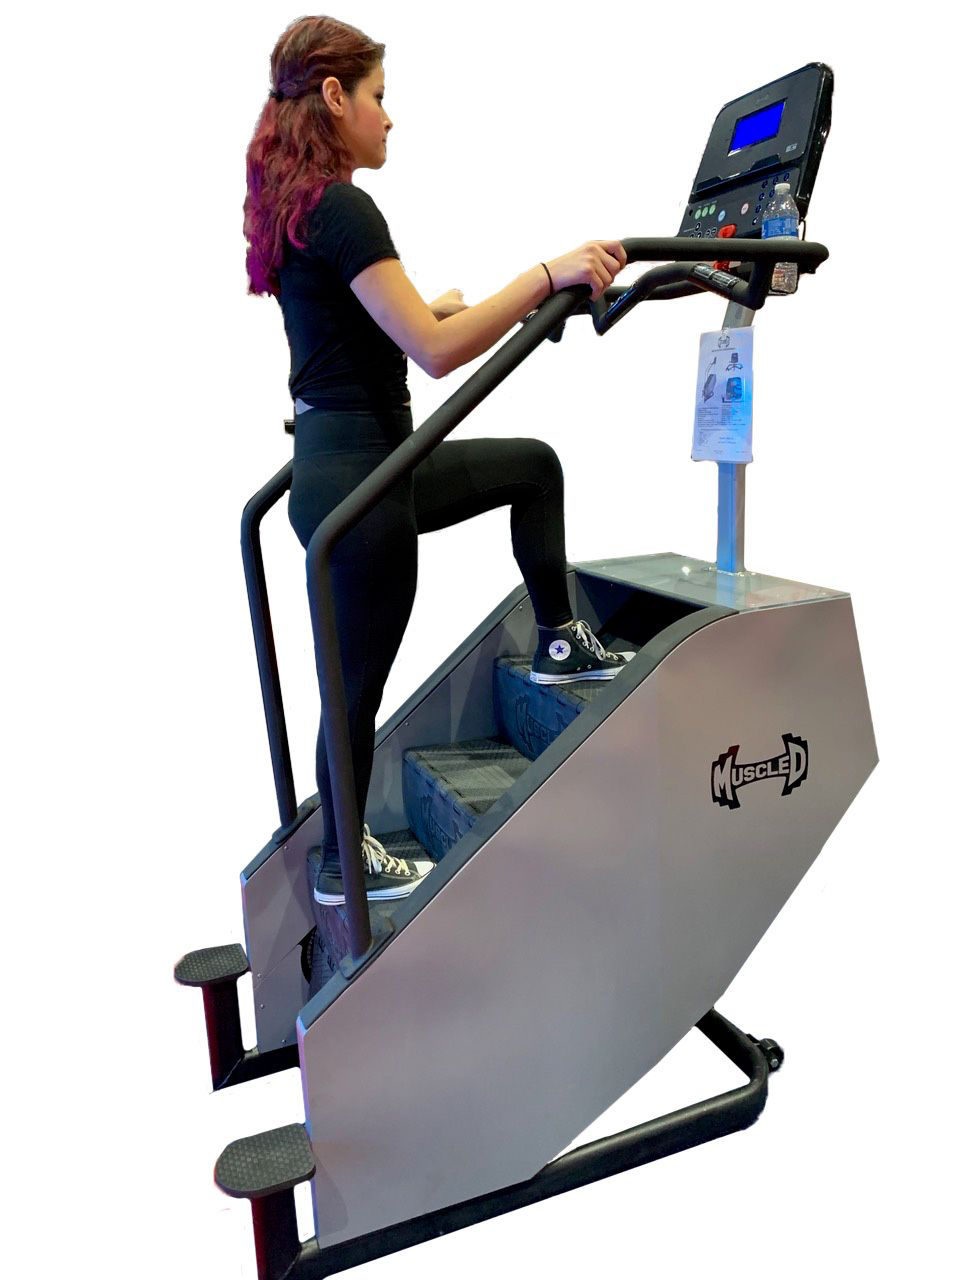 Muscle Stepper Commercial Stair Climber - Muscle D